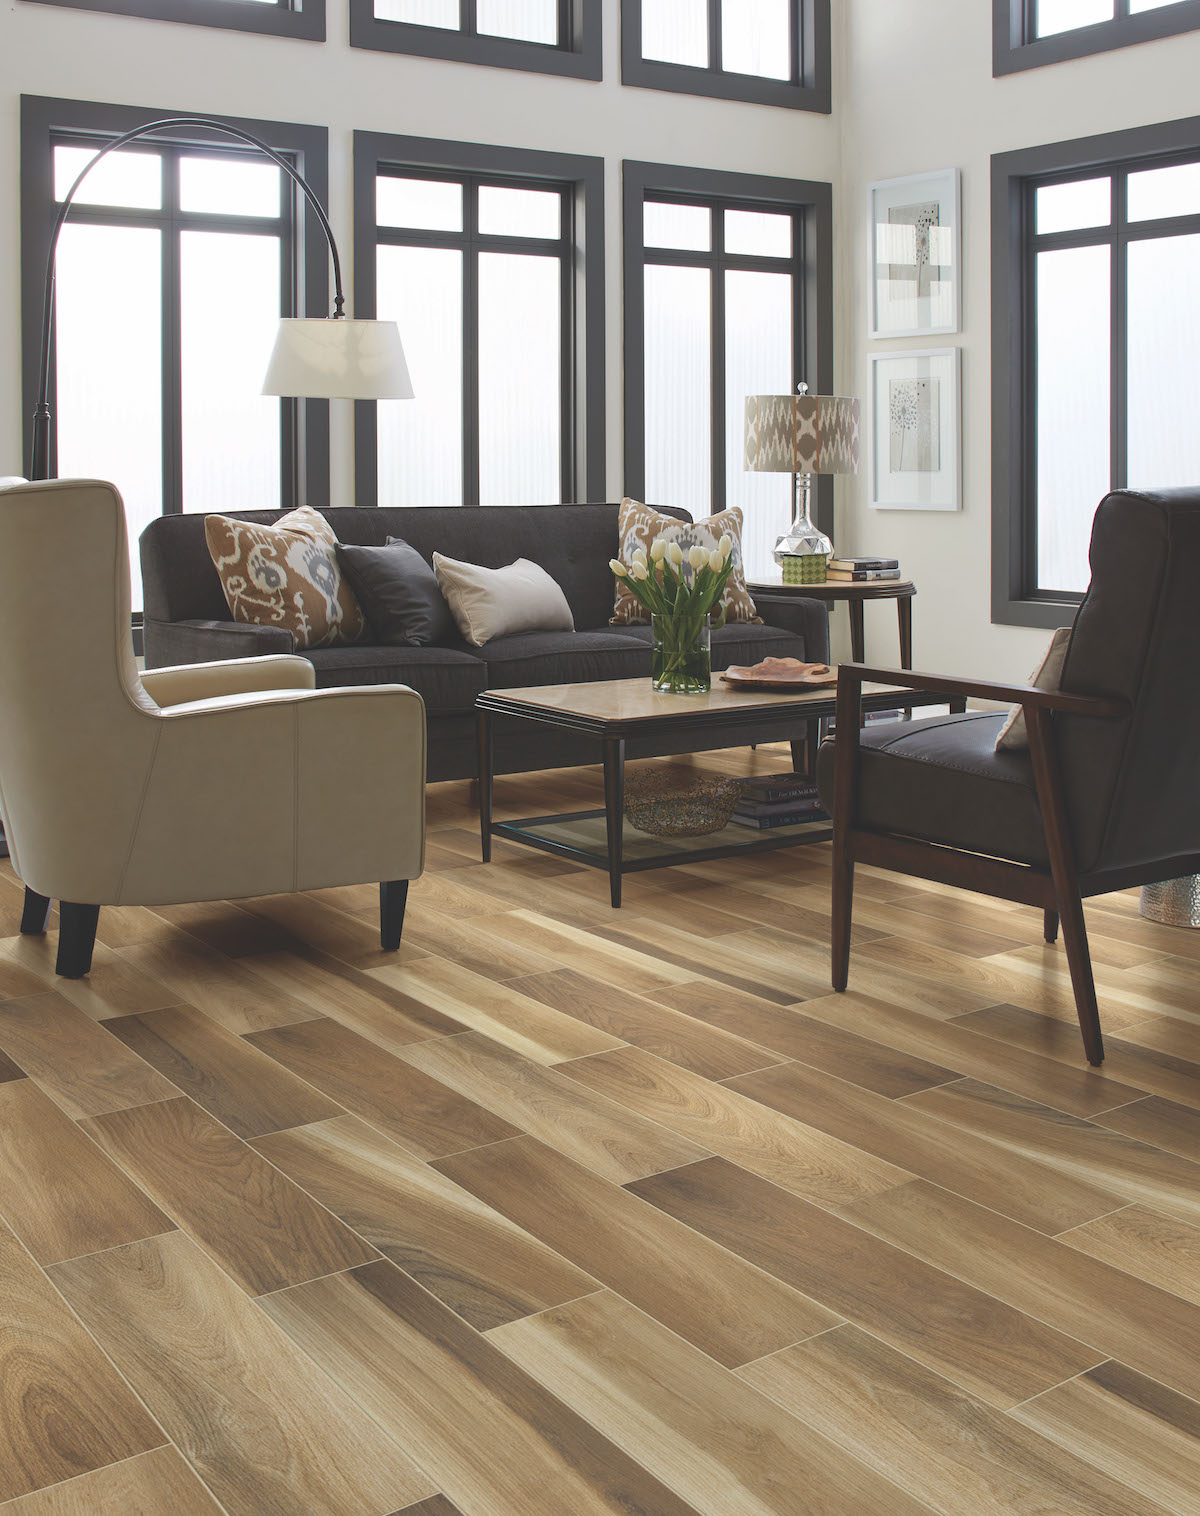 Wood Look Tile From Acadian Flooring Design Center